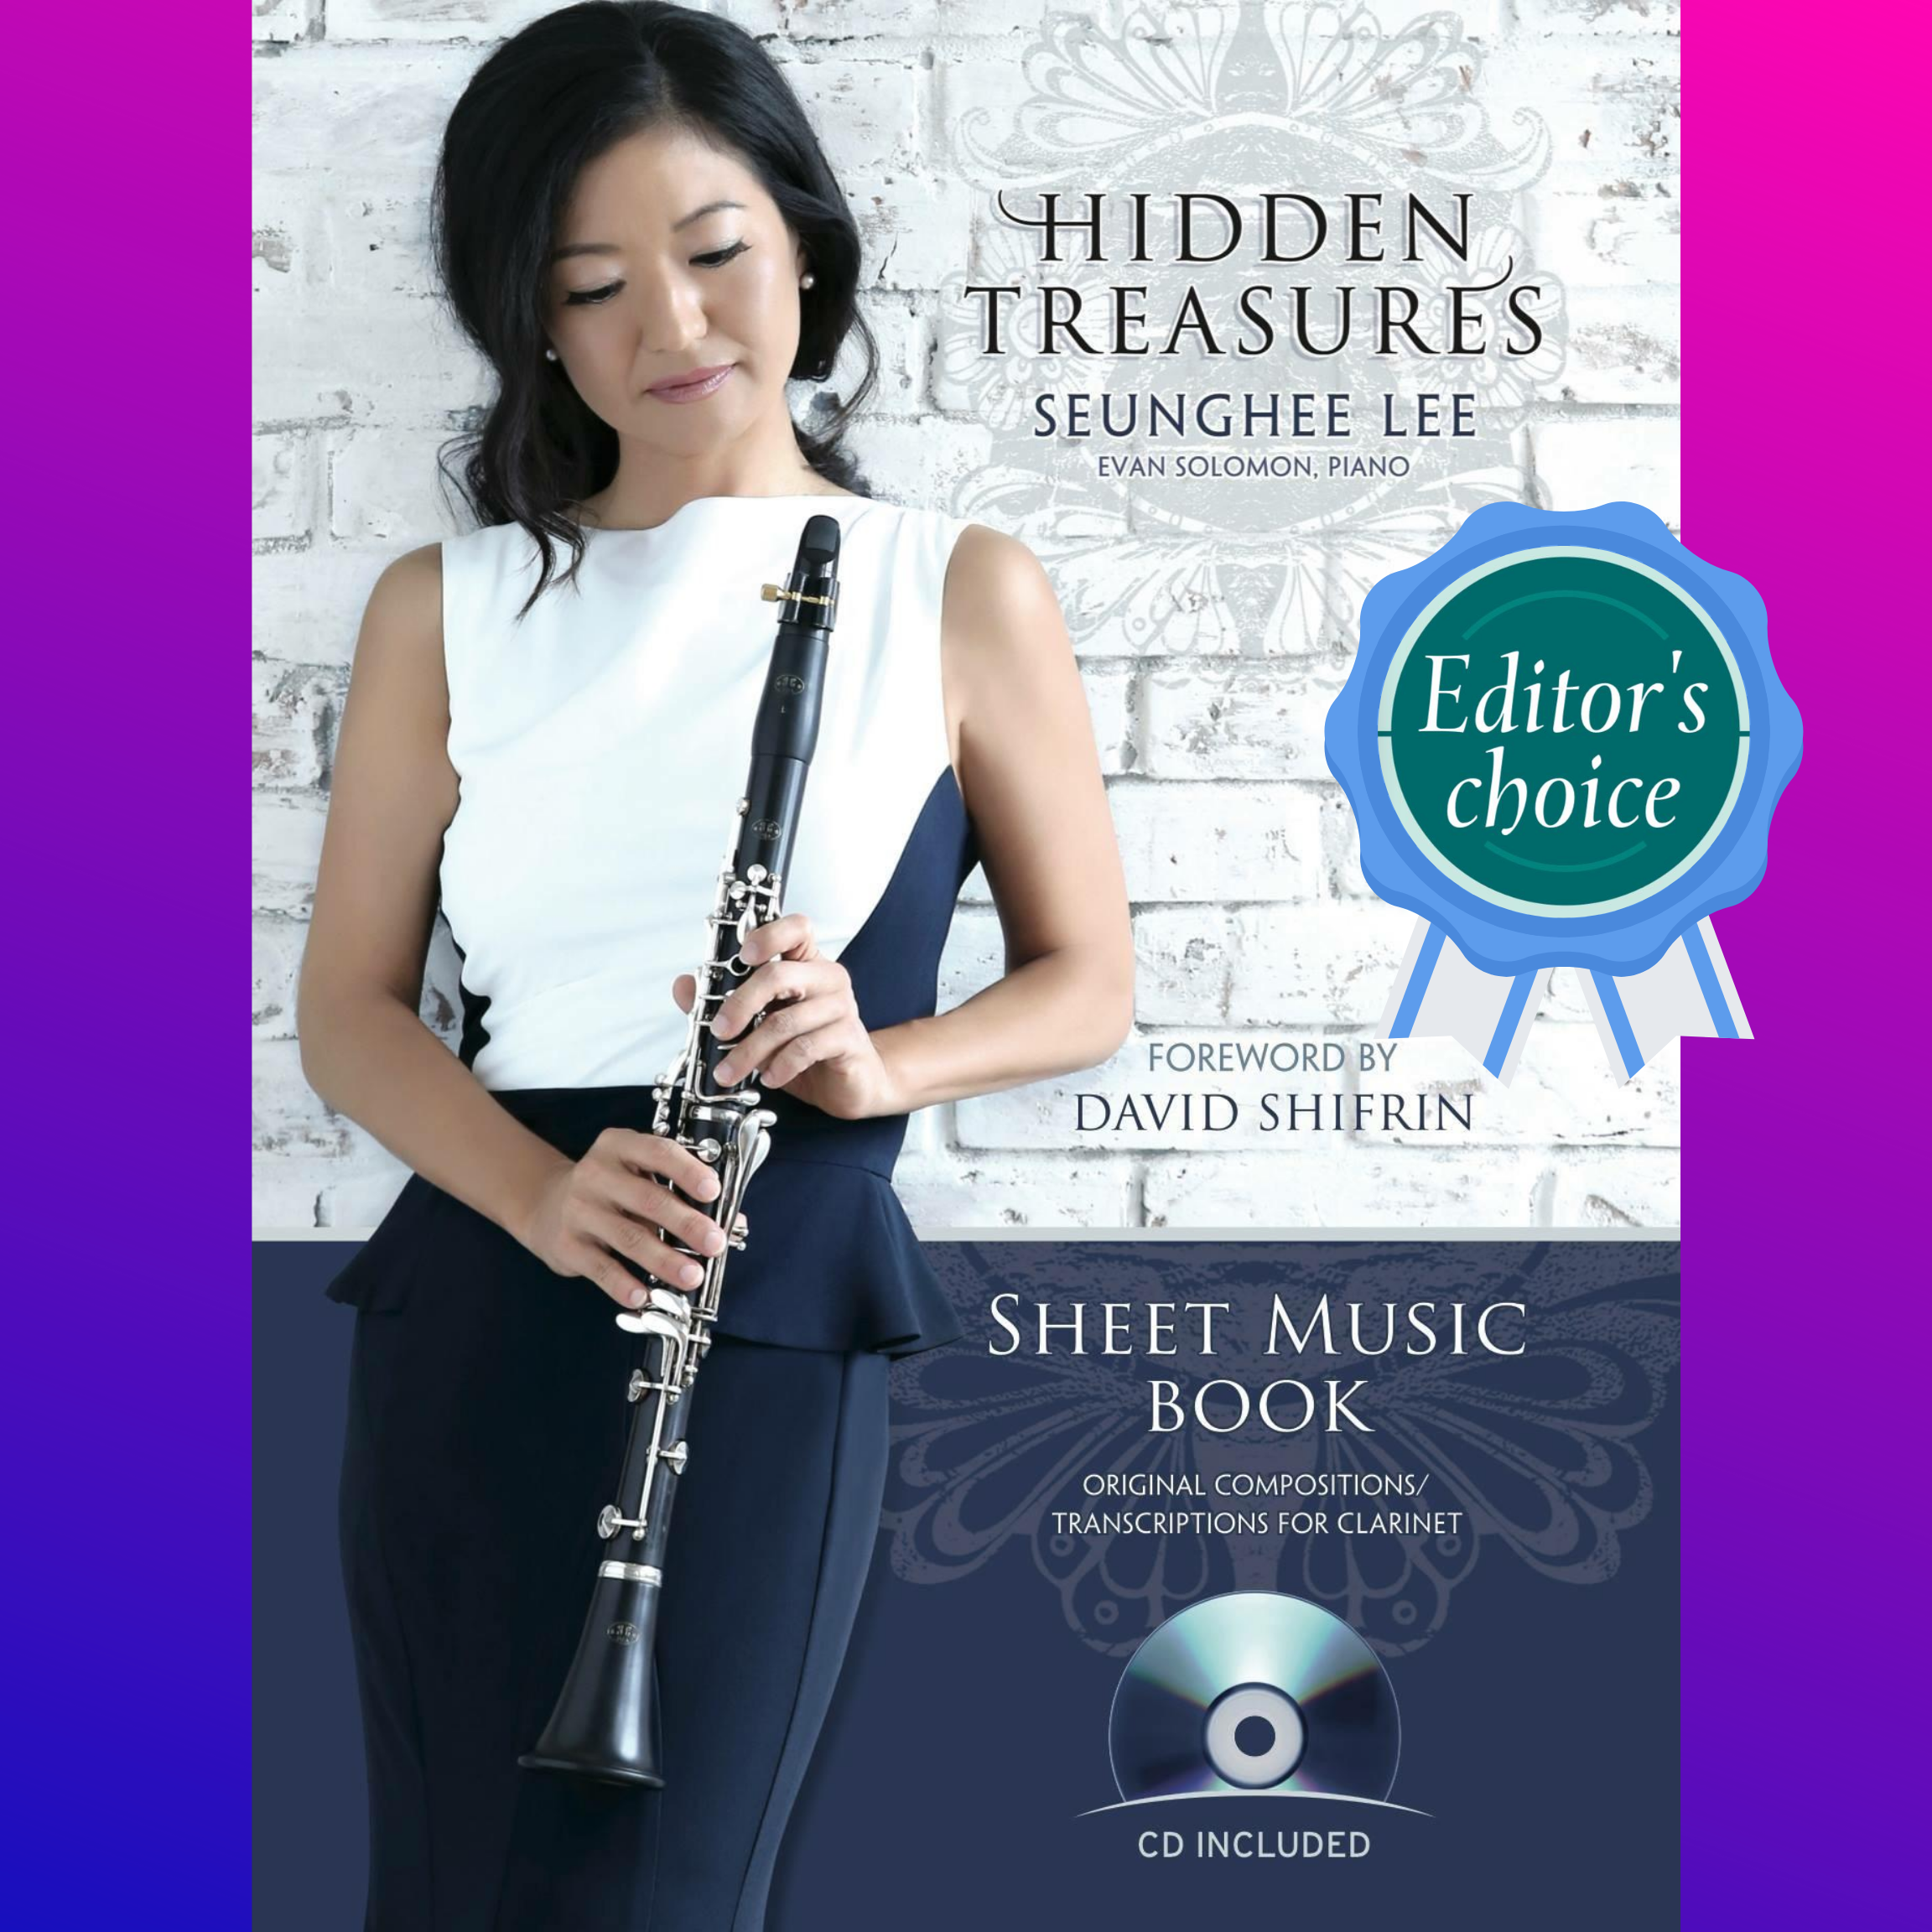 Hidden Treasures Sheet Music Book (CD Included)